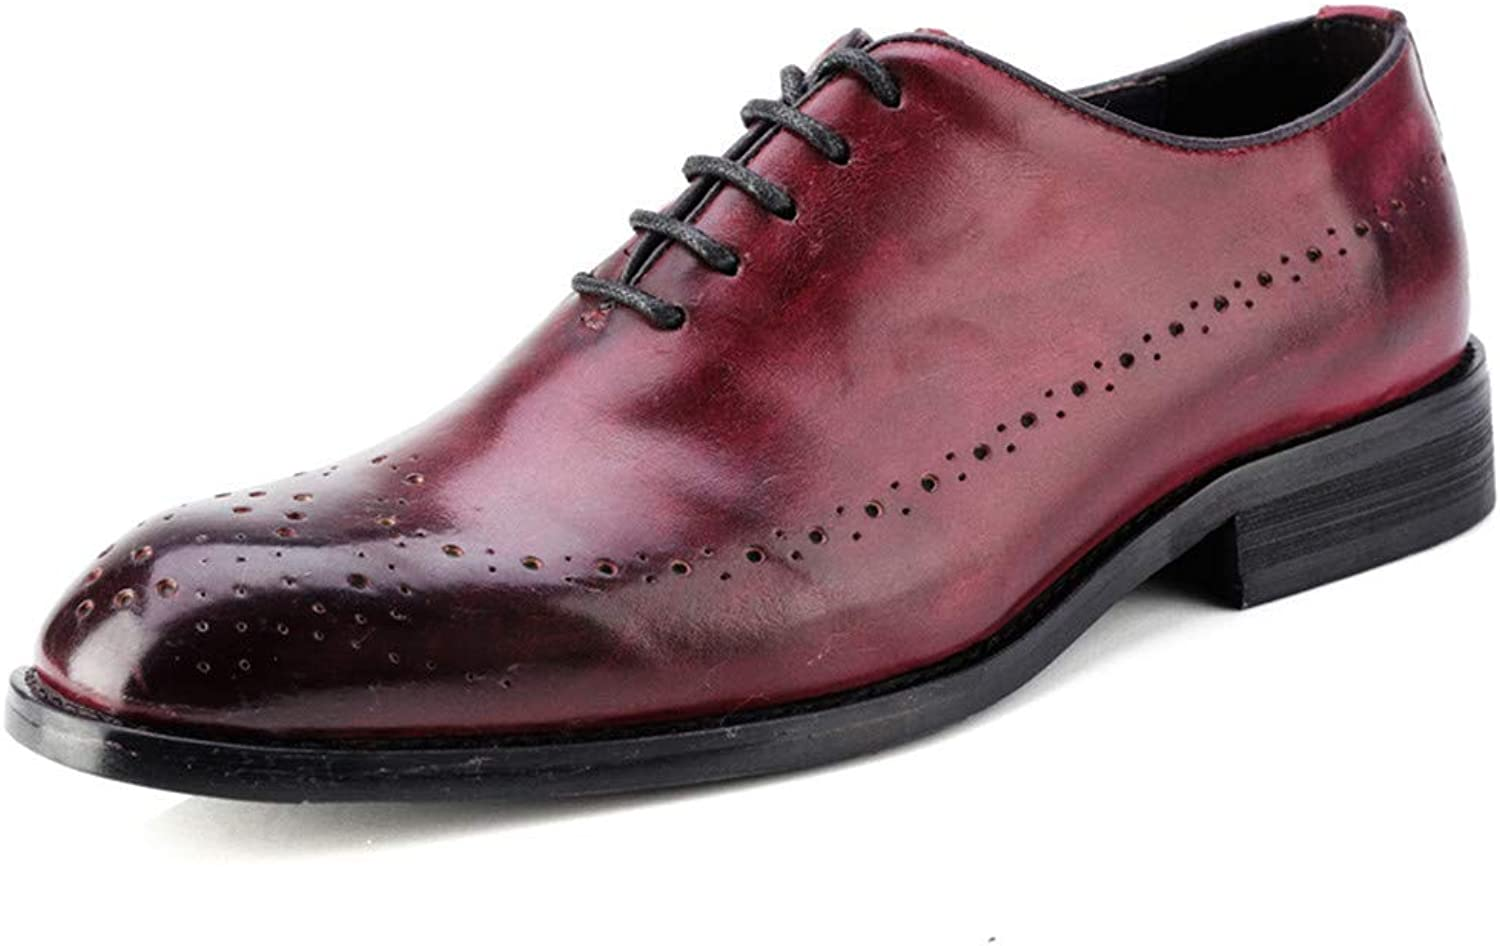 Hhgold 2018 Mens Business Oxford Casual Genuine Leather British Style Carving Belt Brogue shoes (color  Wine, Size  42 EU) (color   Wine, Size   39 EU)